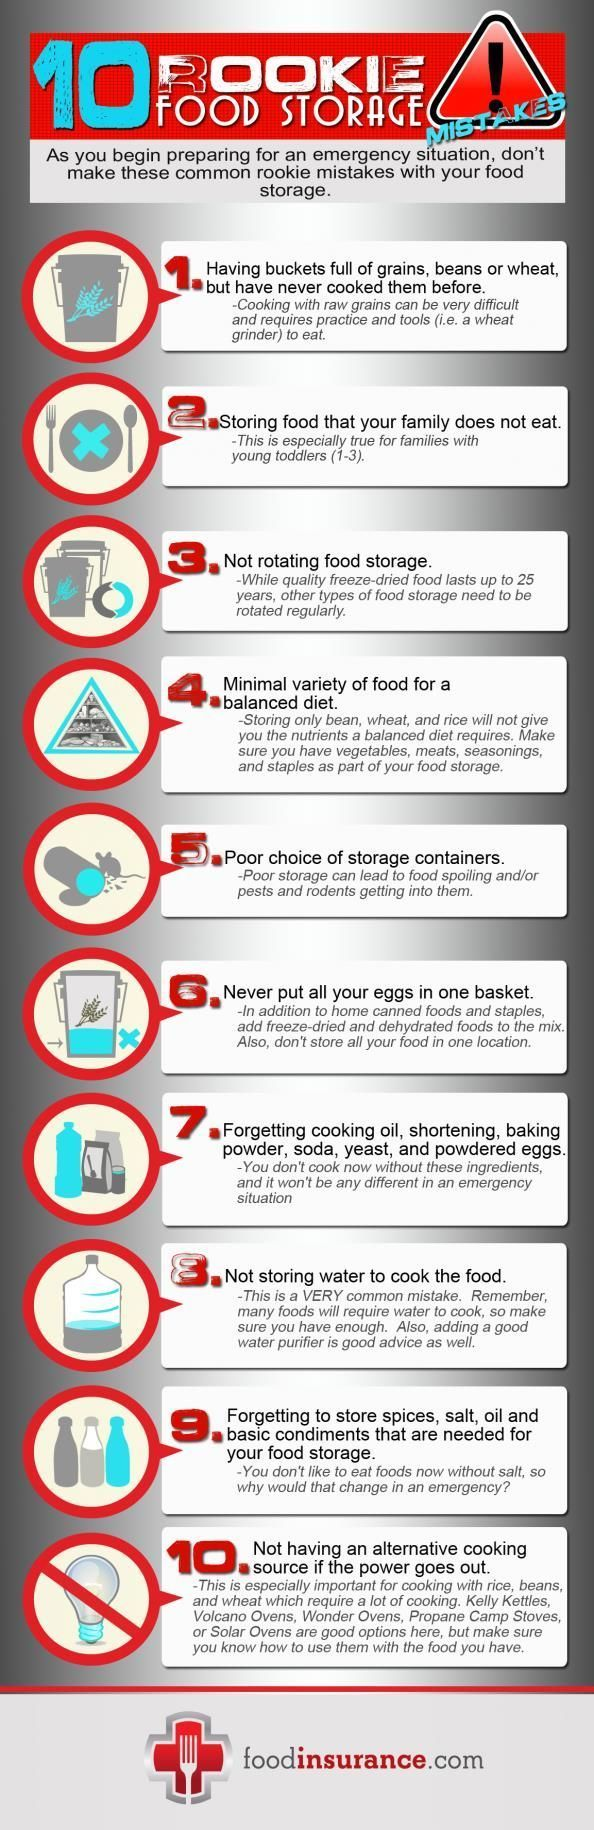 10 Rookie Food Storage Mistakes | Survival Prepping and Long Term Food Storage for Preparedness by Survival Life at http://survivallife.com/2014/03/13/how-to-build-emergency-food-supply/